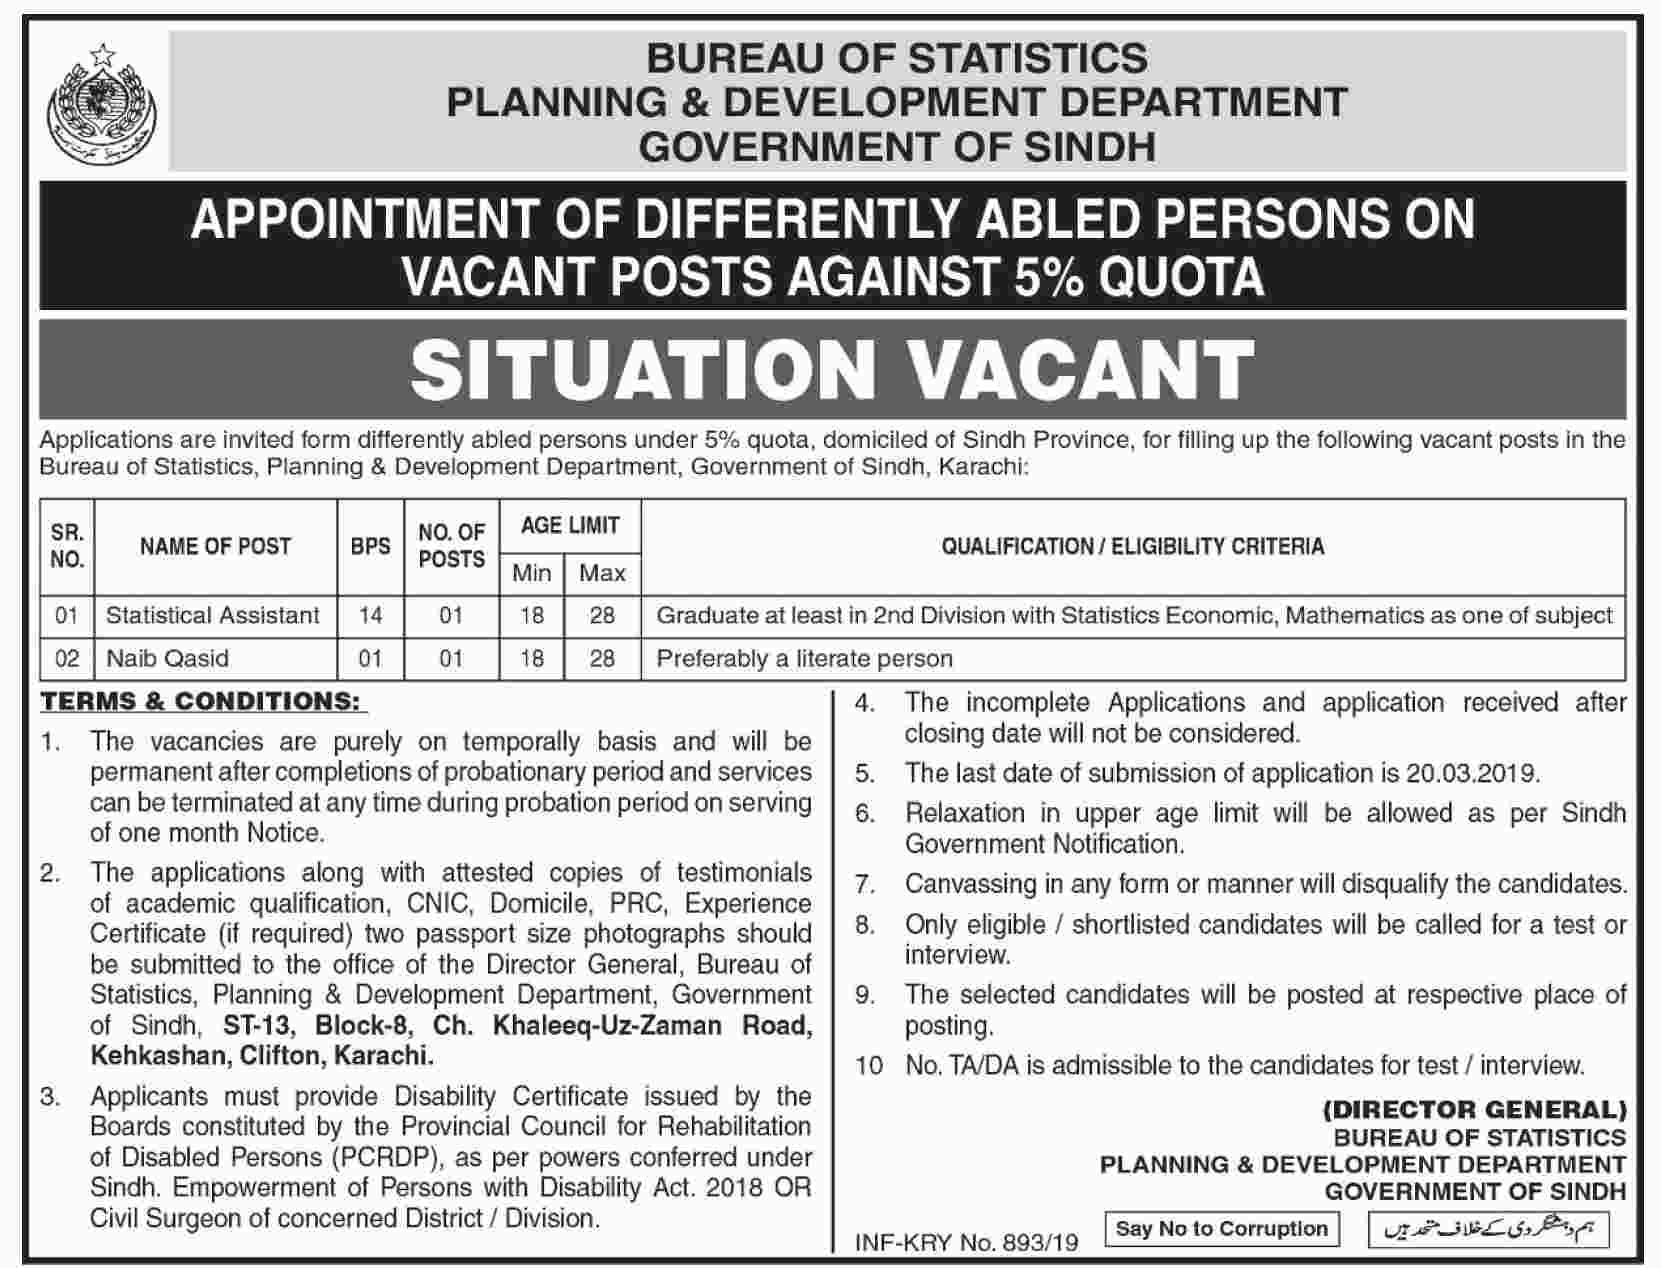 Planning And Development Department Govt Of Sindh Jobs 23 Feb 2019